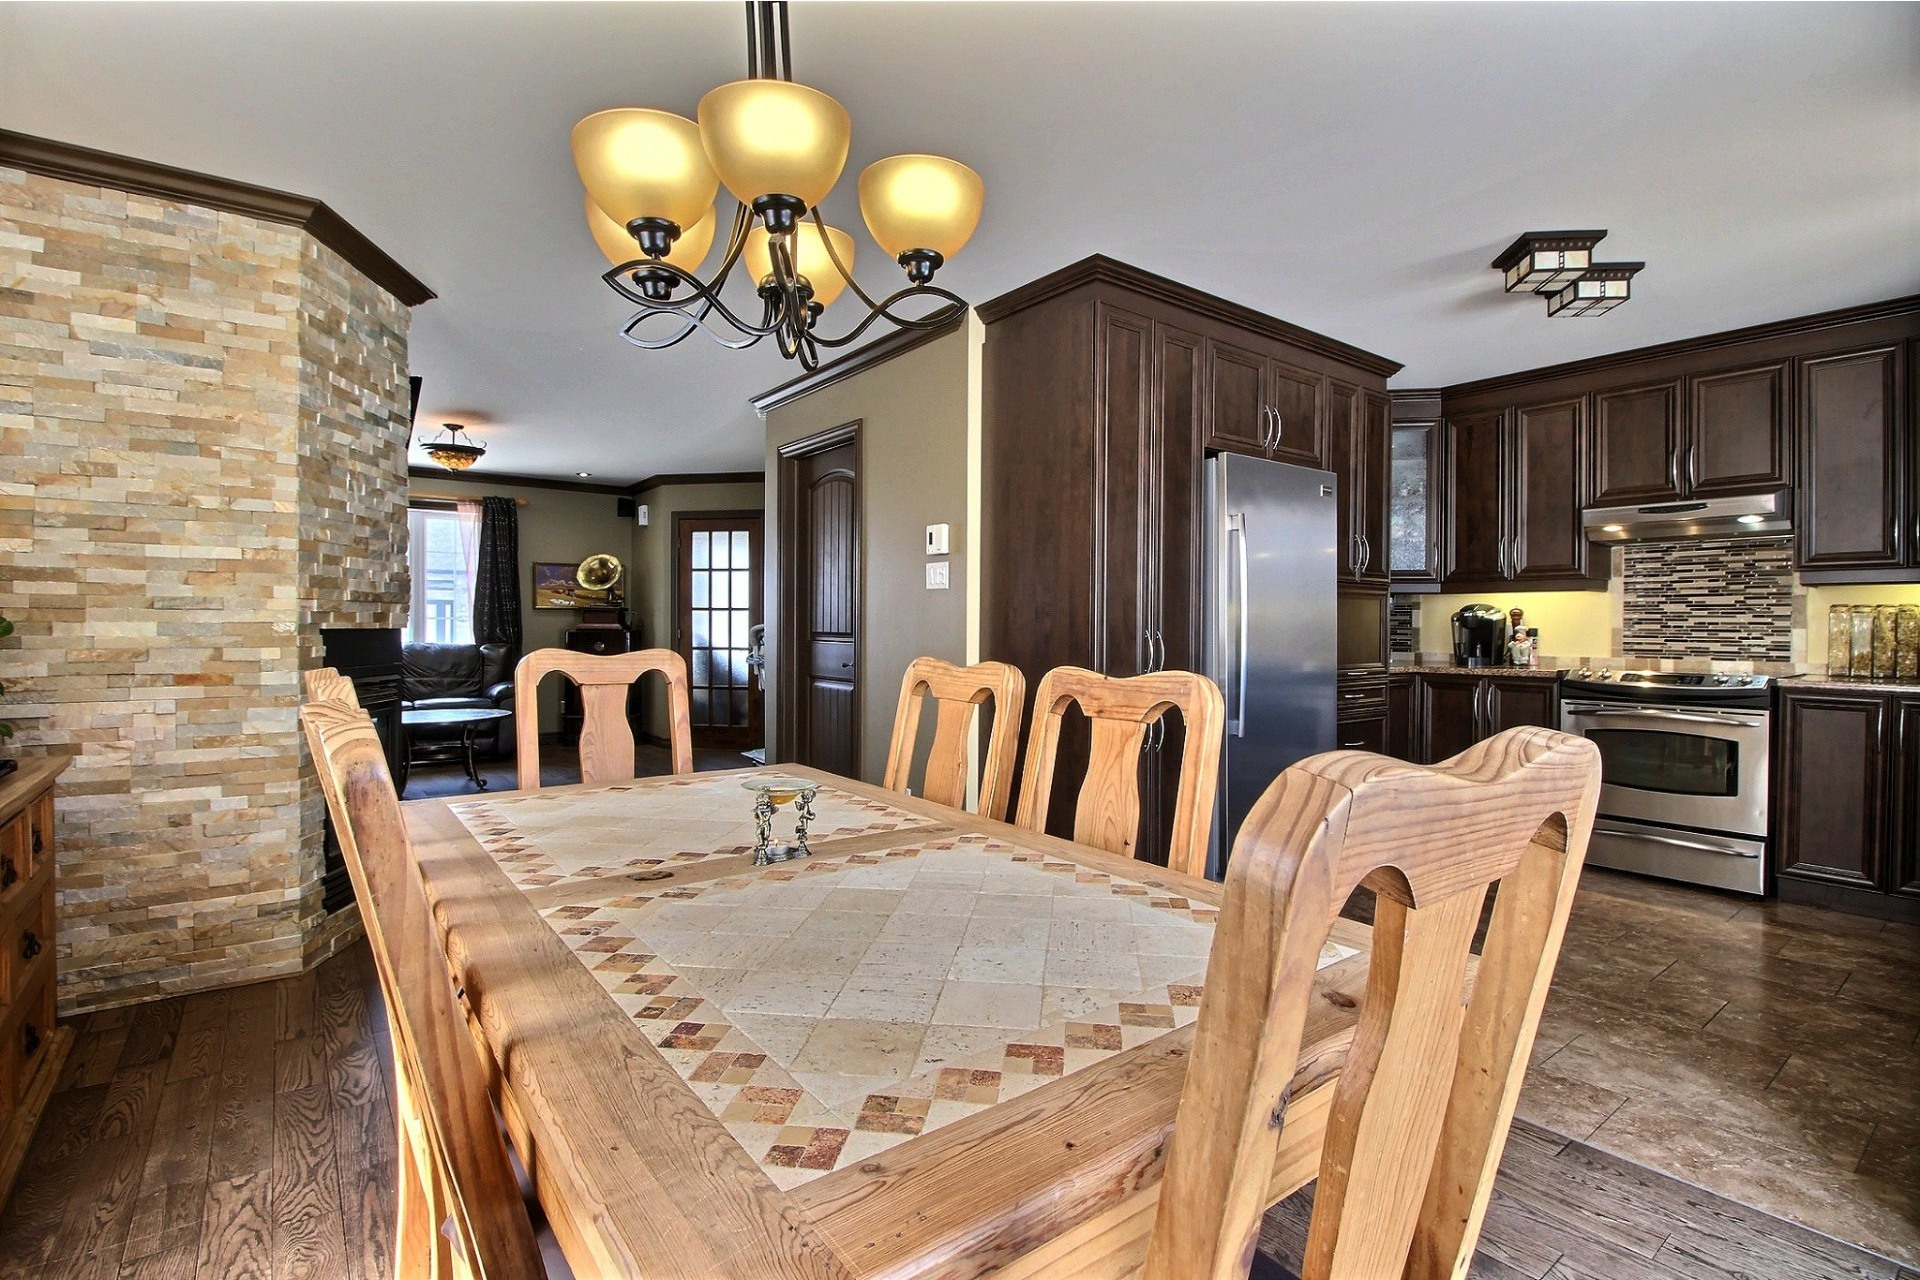 image 9 - House For sale Notre-Dame-des-Prairies - 12 rooms